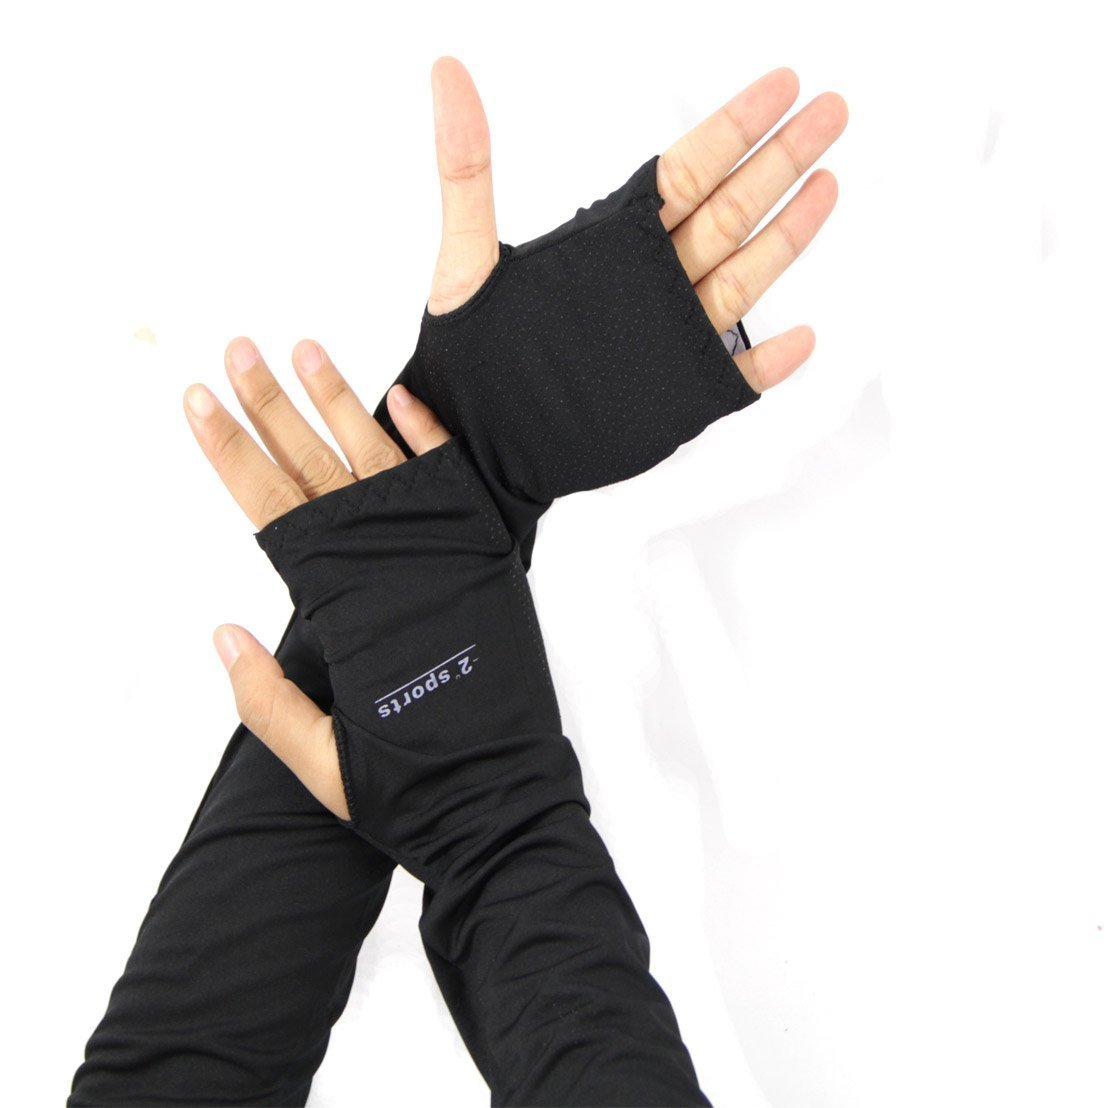 Fingerless gloves for sun protection - Amazon Com Sun Block Anti Uv Protective Gloves Elbow Length Driving Arm Sleeves With Fingerless Gloves Sports Outdoors